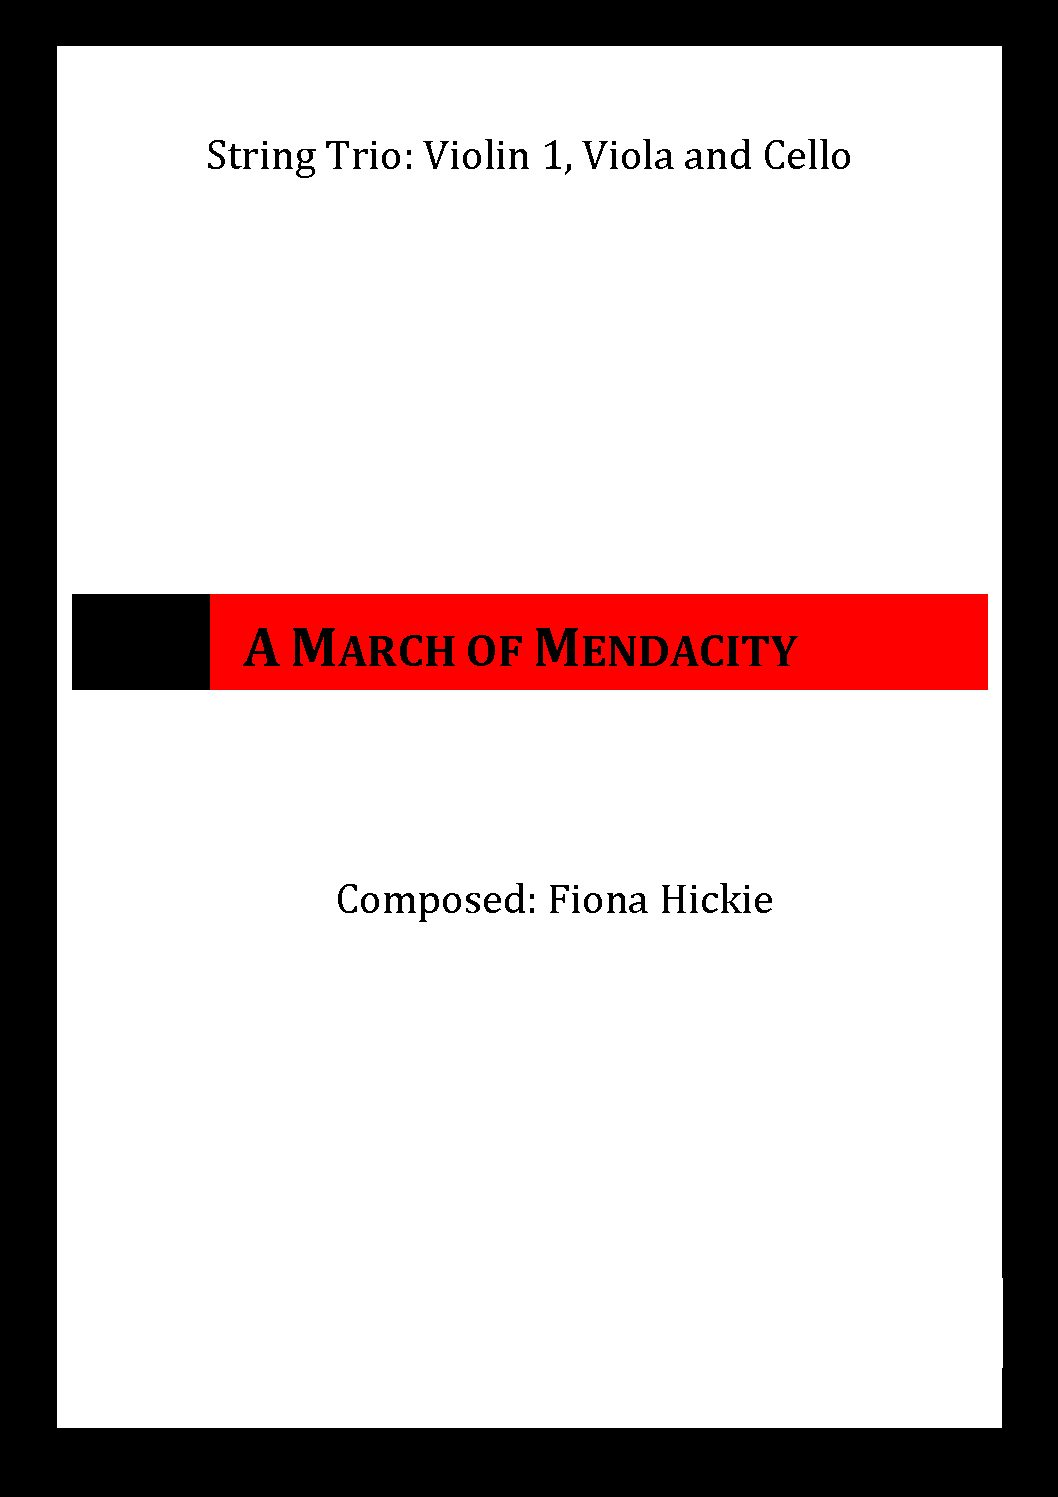 A March of Mendacity – for String Trio